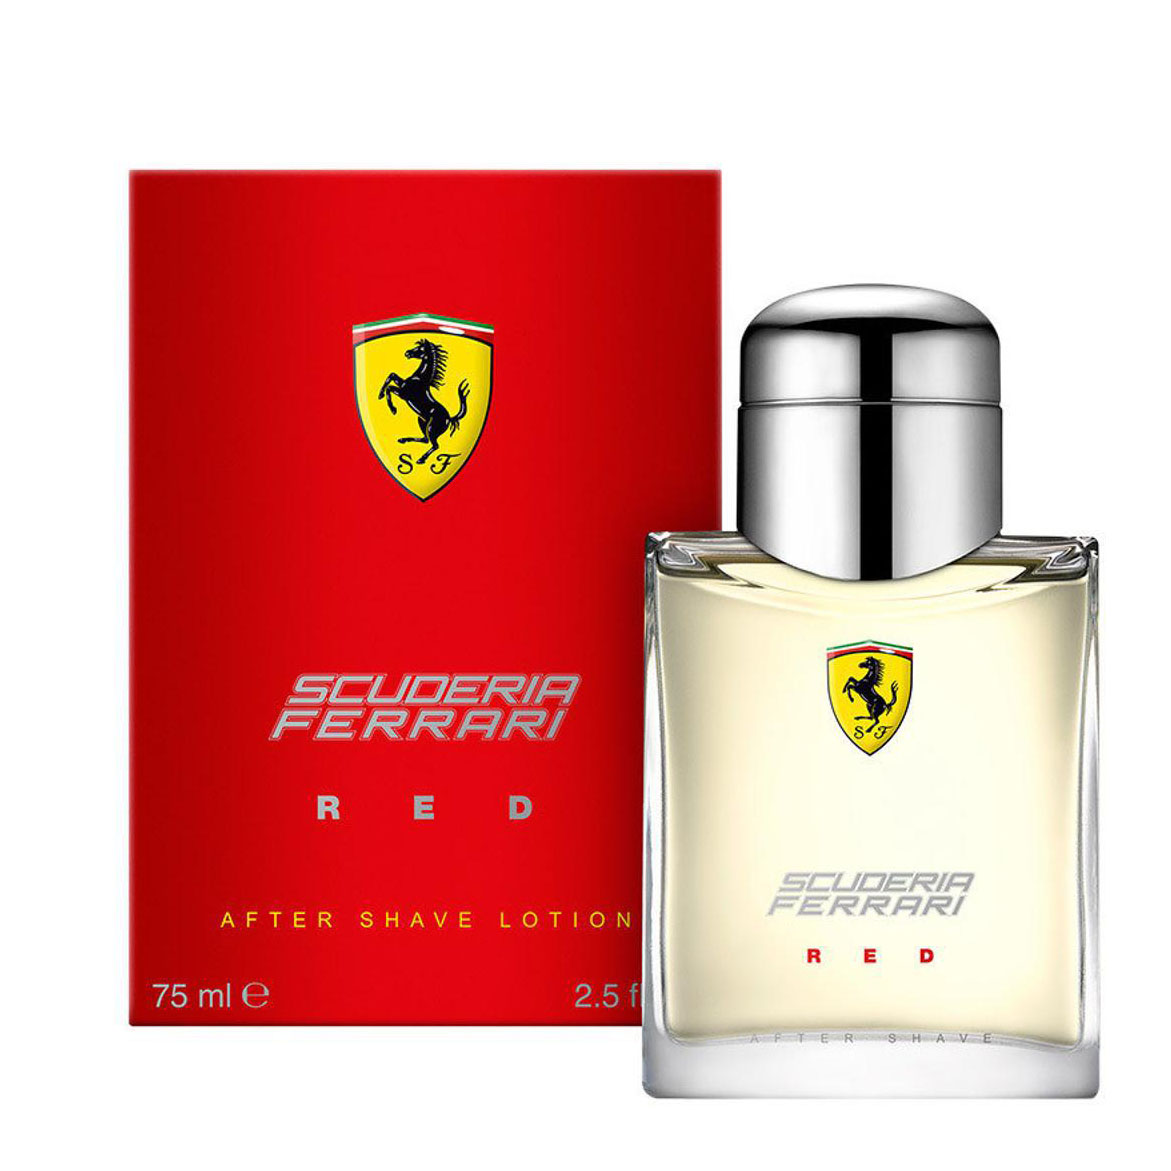 Scuderia Ferrari for men